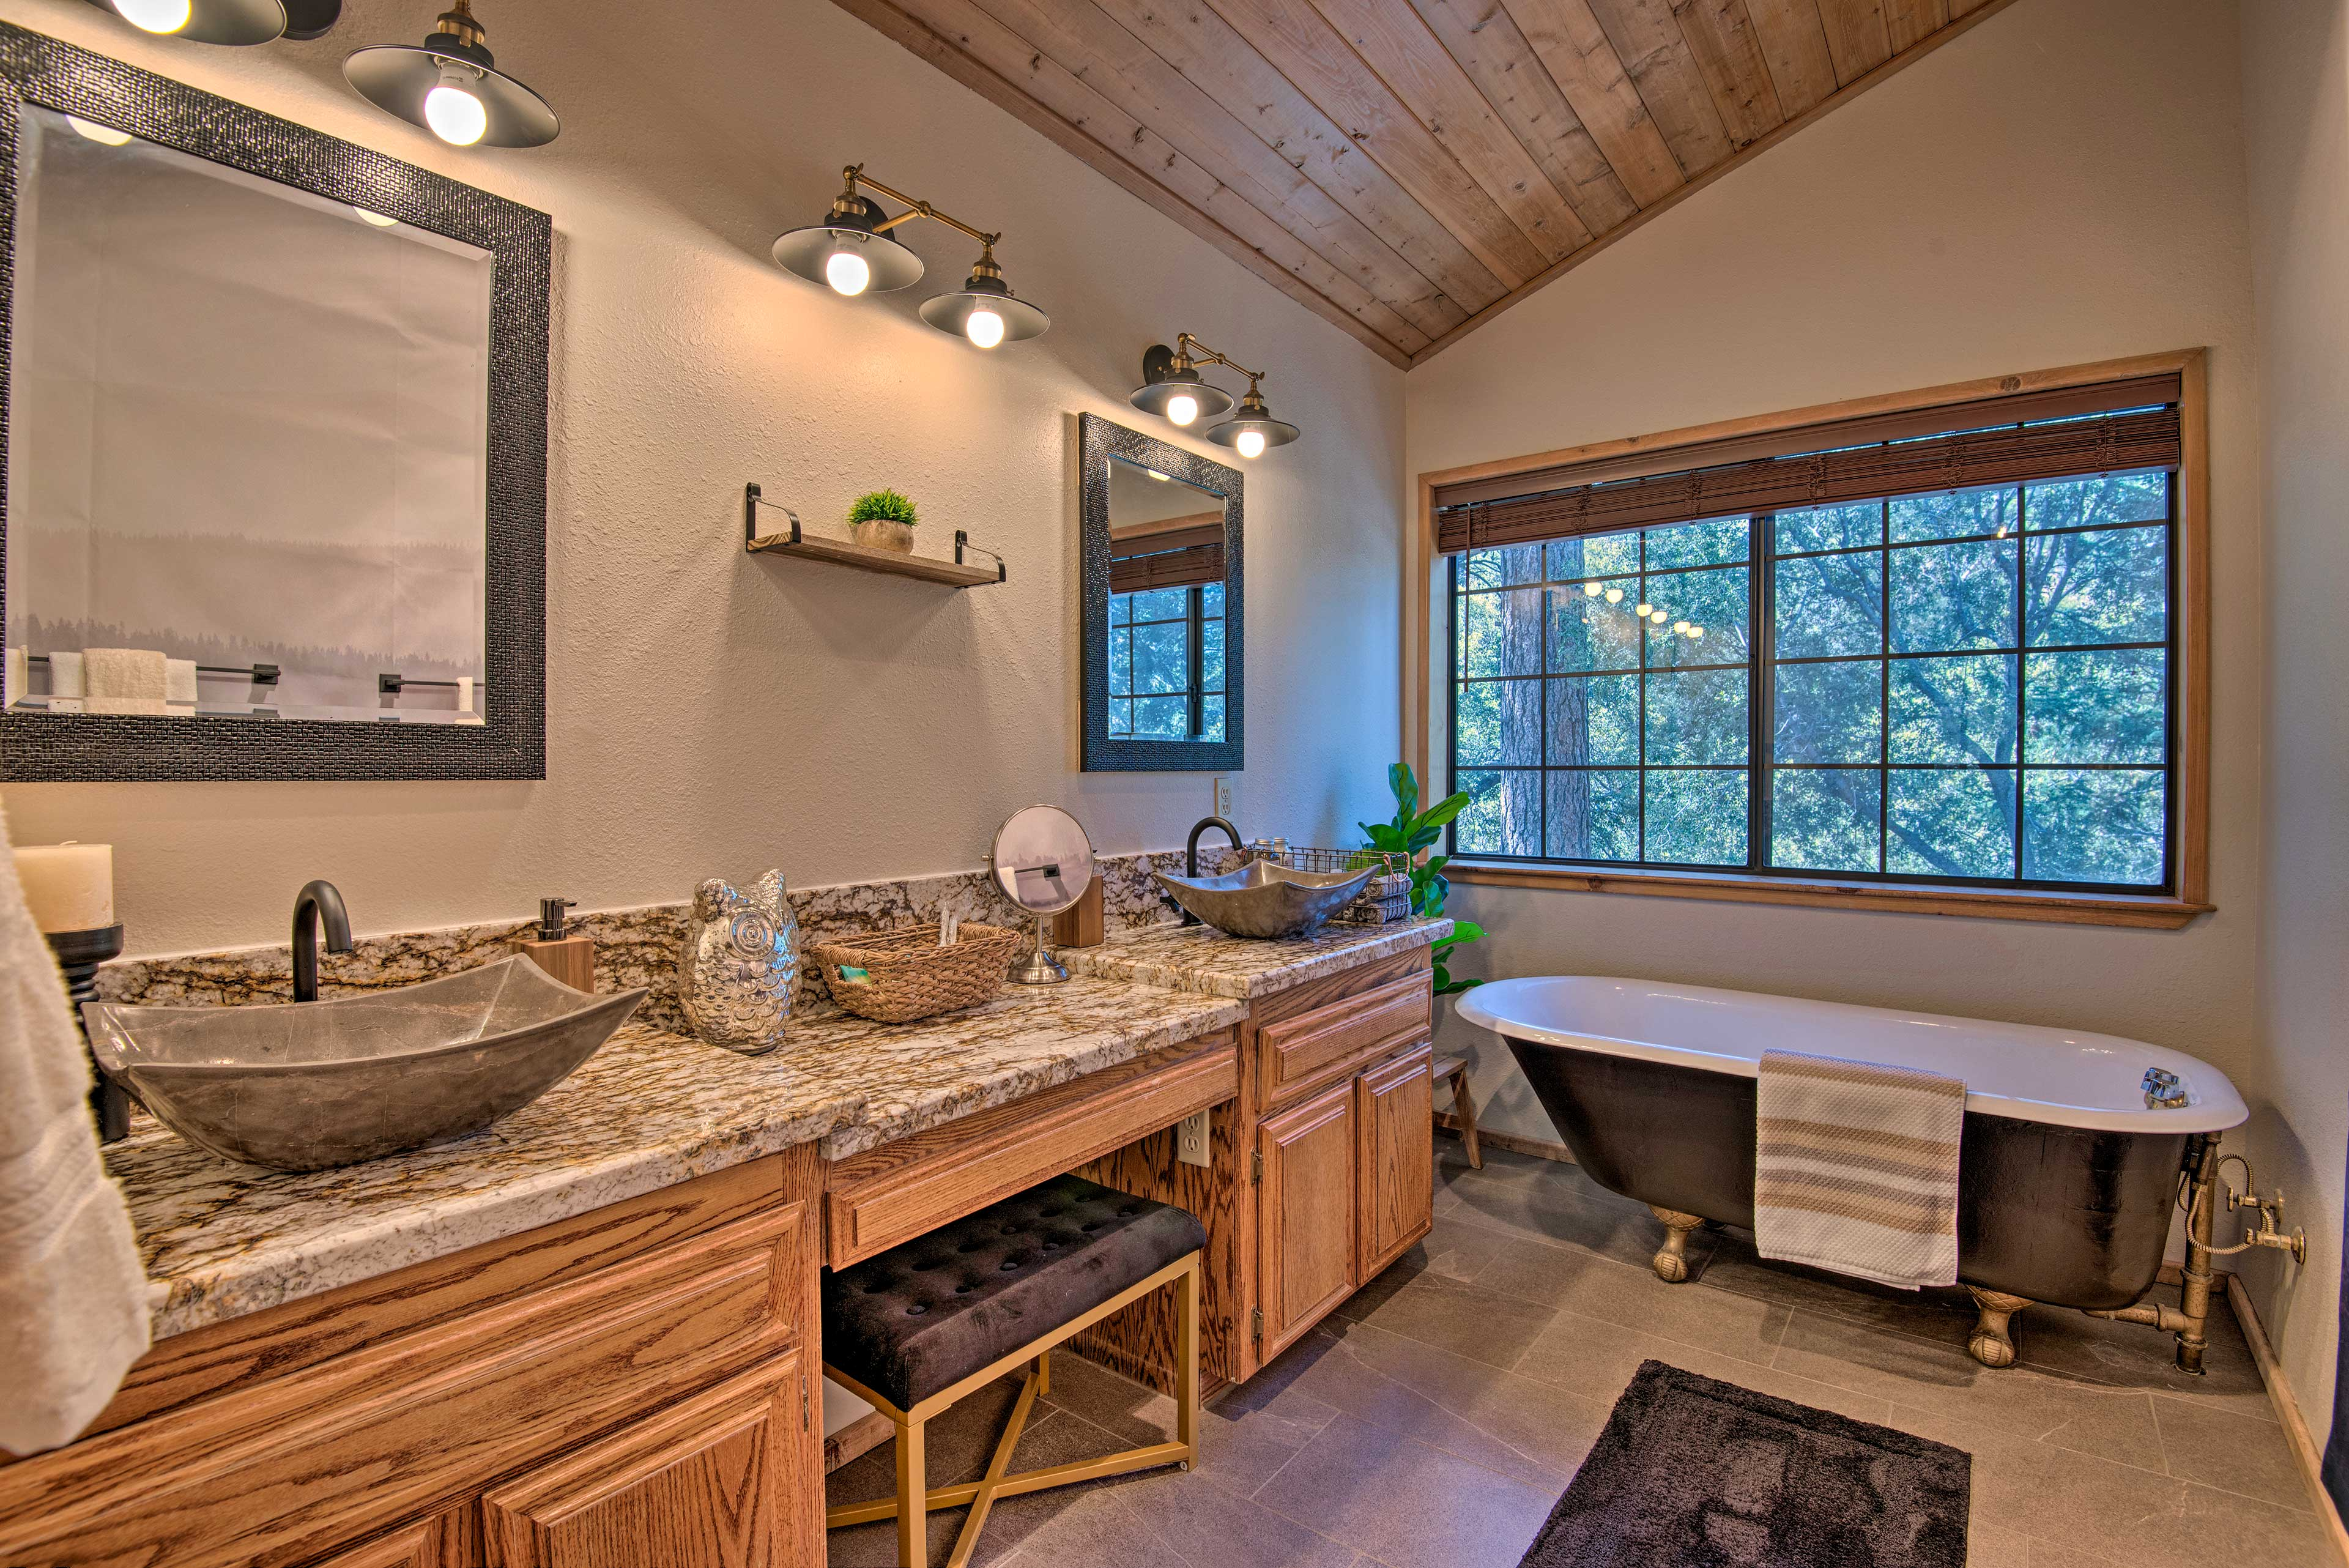 The en-suite bathroom features double sinks and a deep soaking tub.